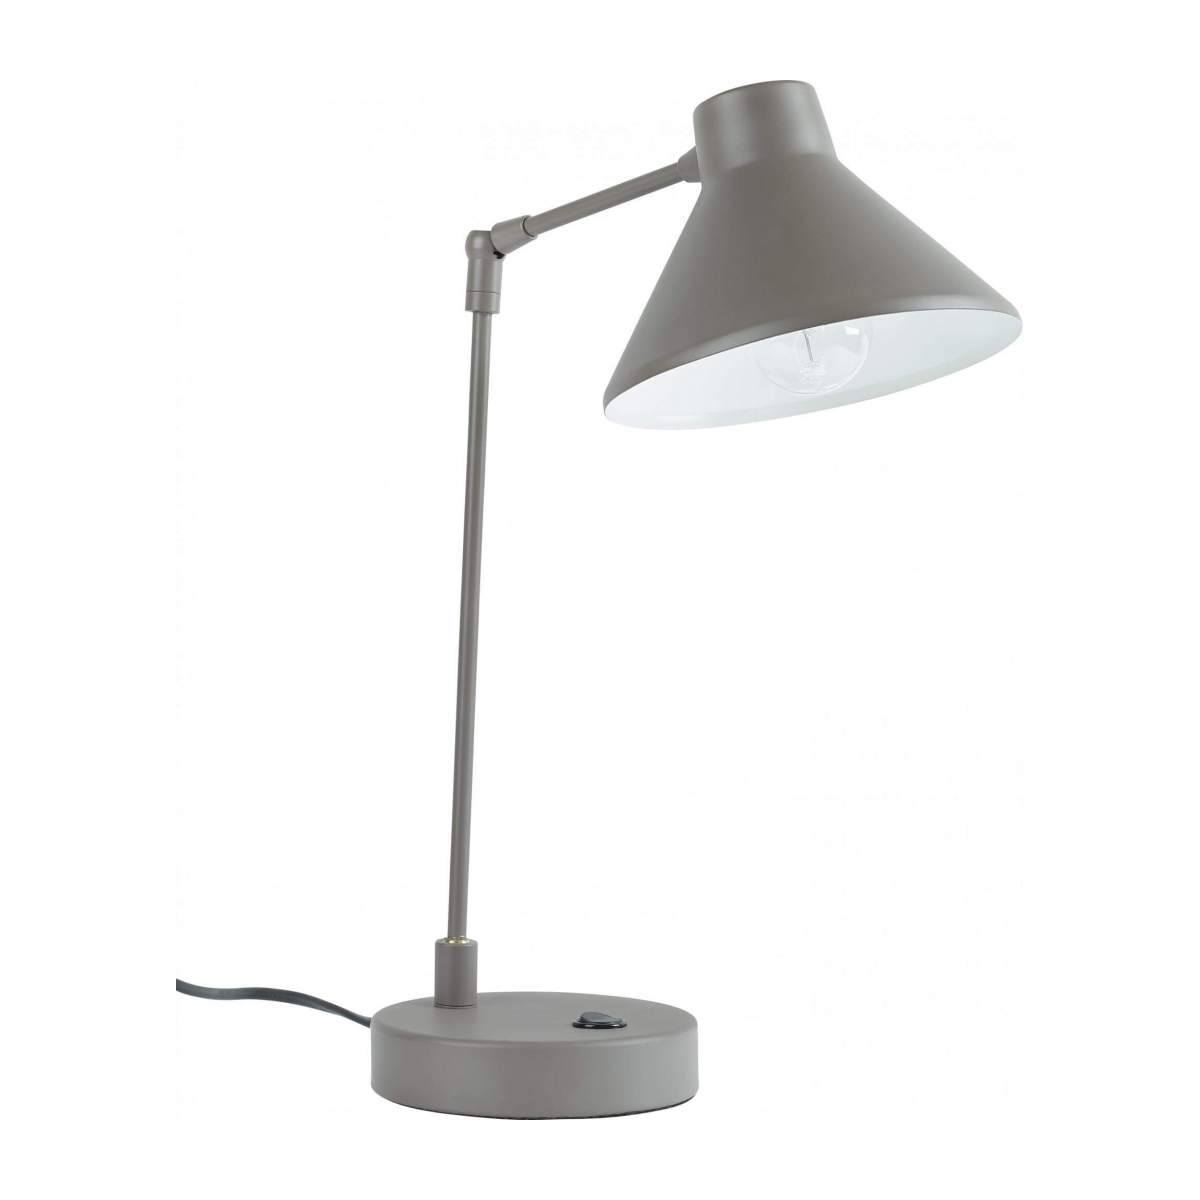 Steel desk lamp, brown n°1